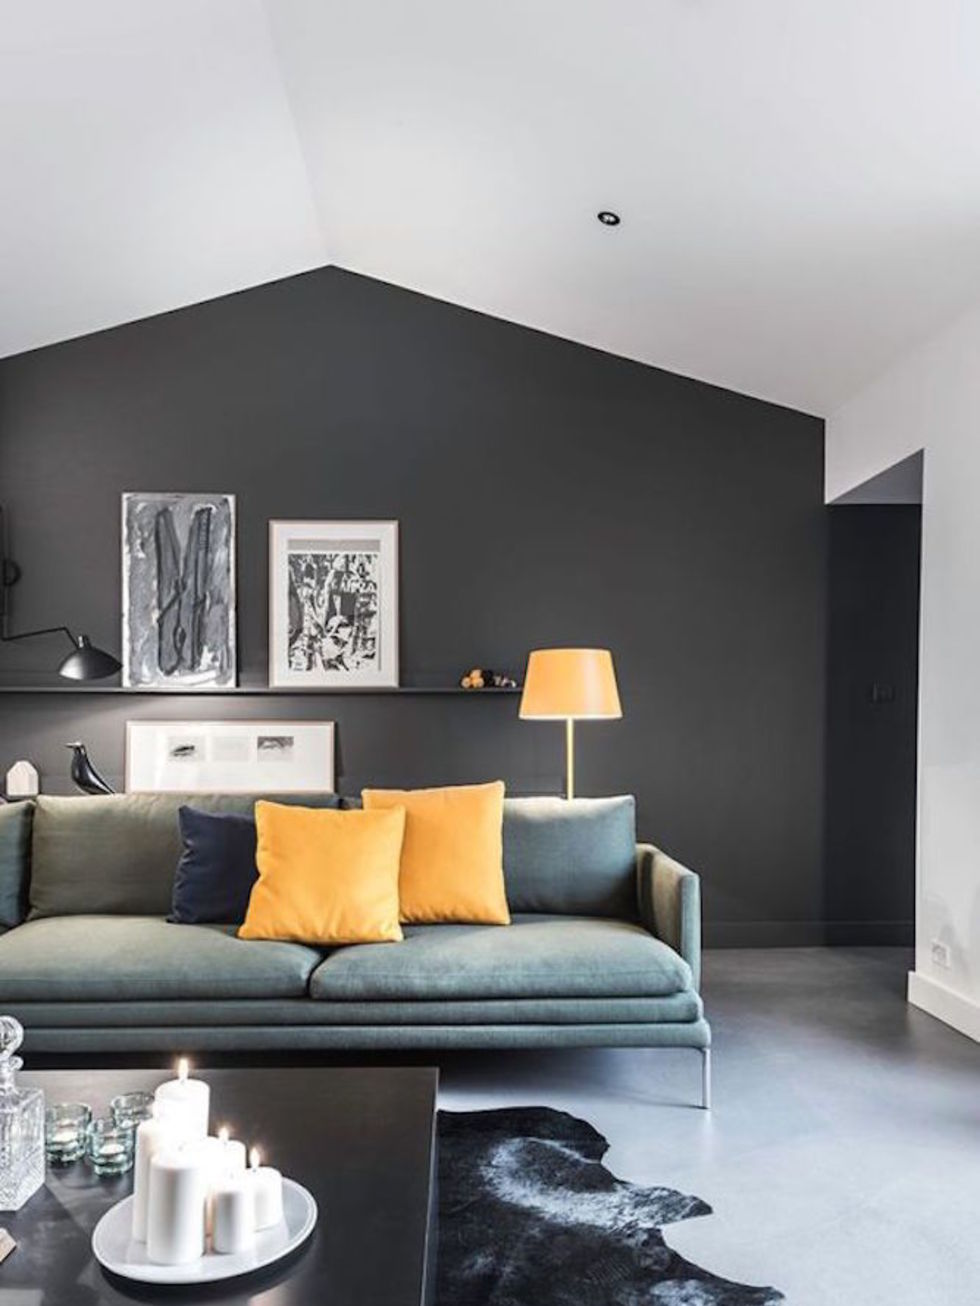 15 Black Feature Walls To Make You Rethink All Your Decor Decisions Part 9